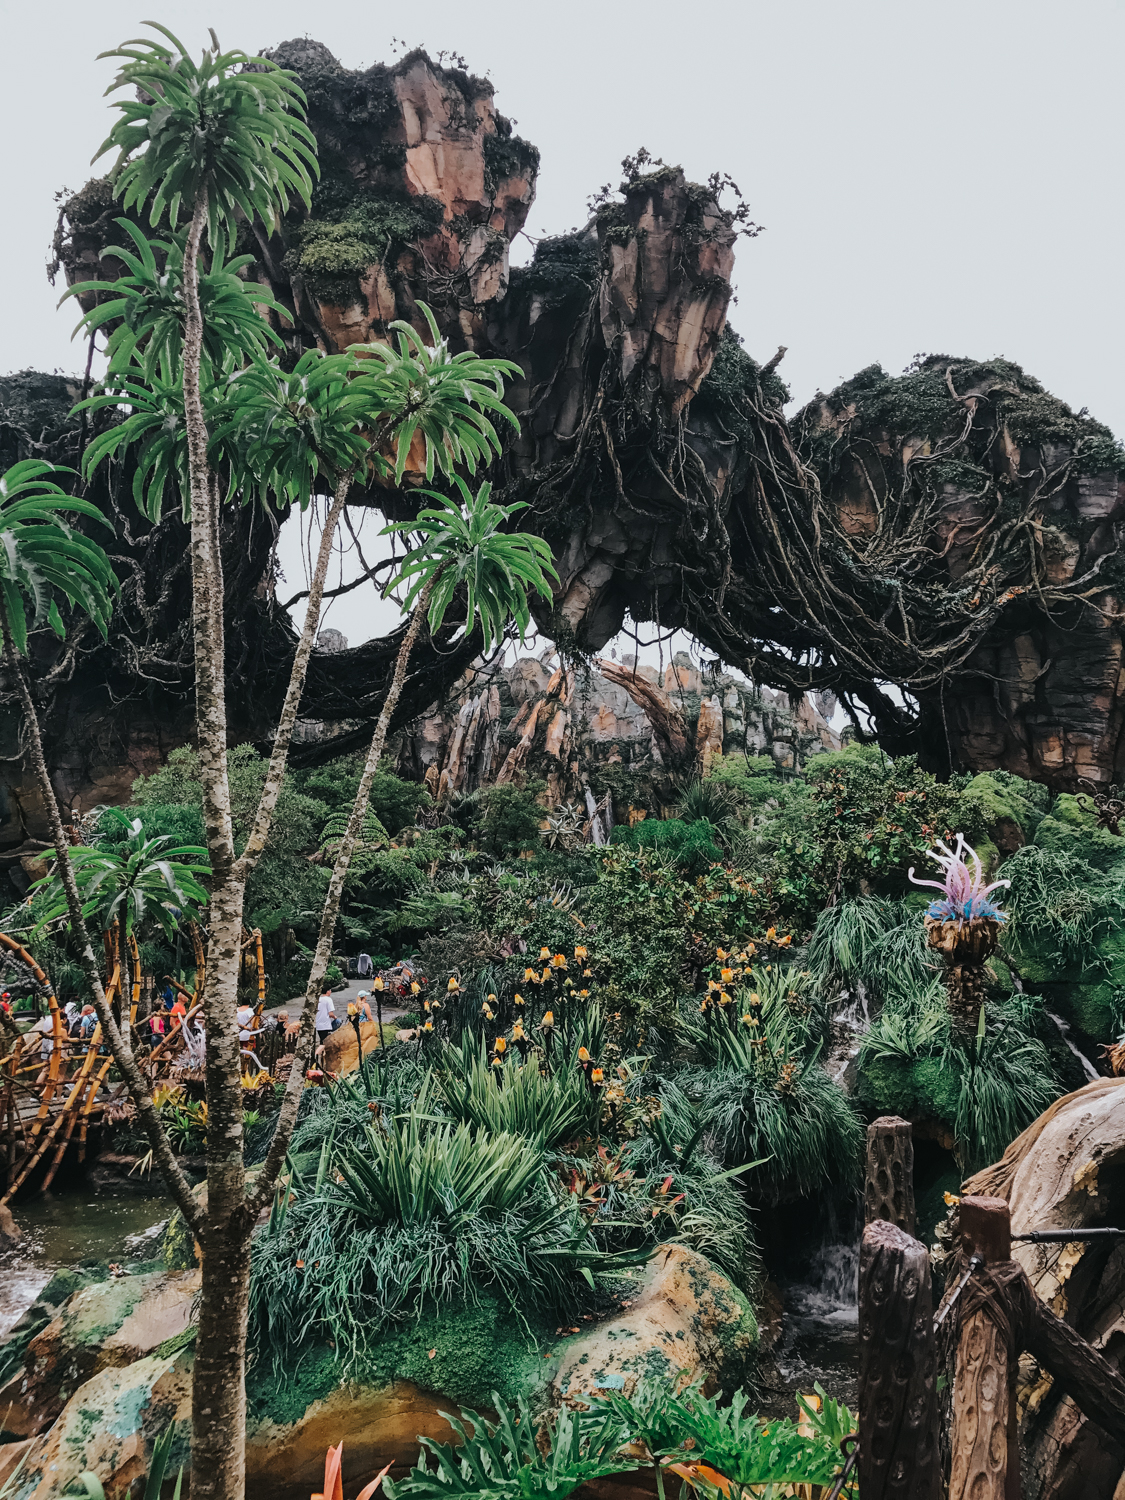 Floating rock inside Disney's Pandora: The World of Avatar